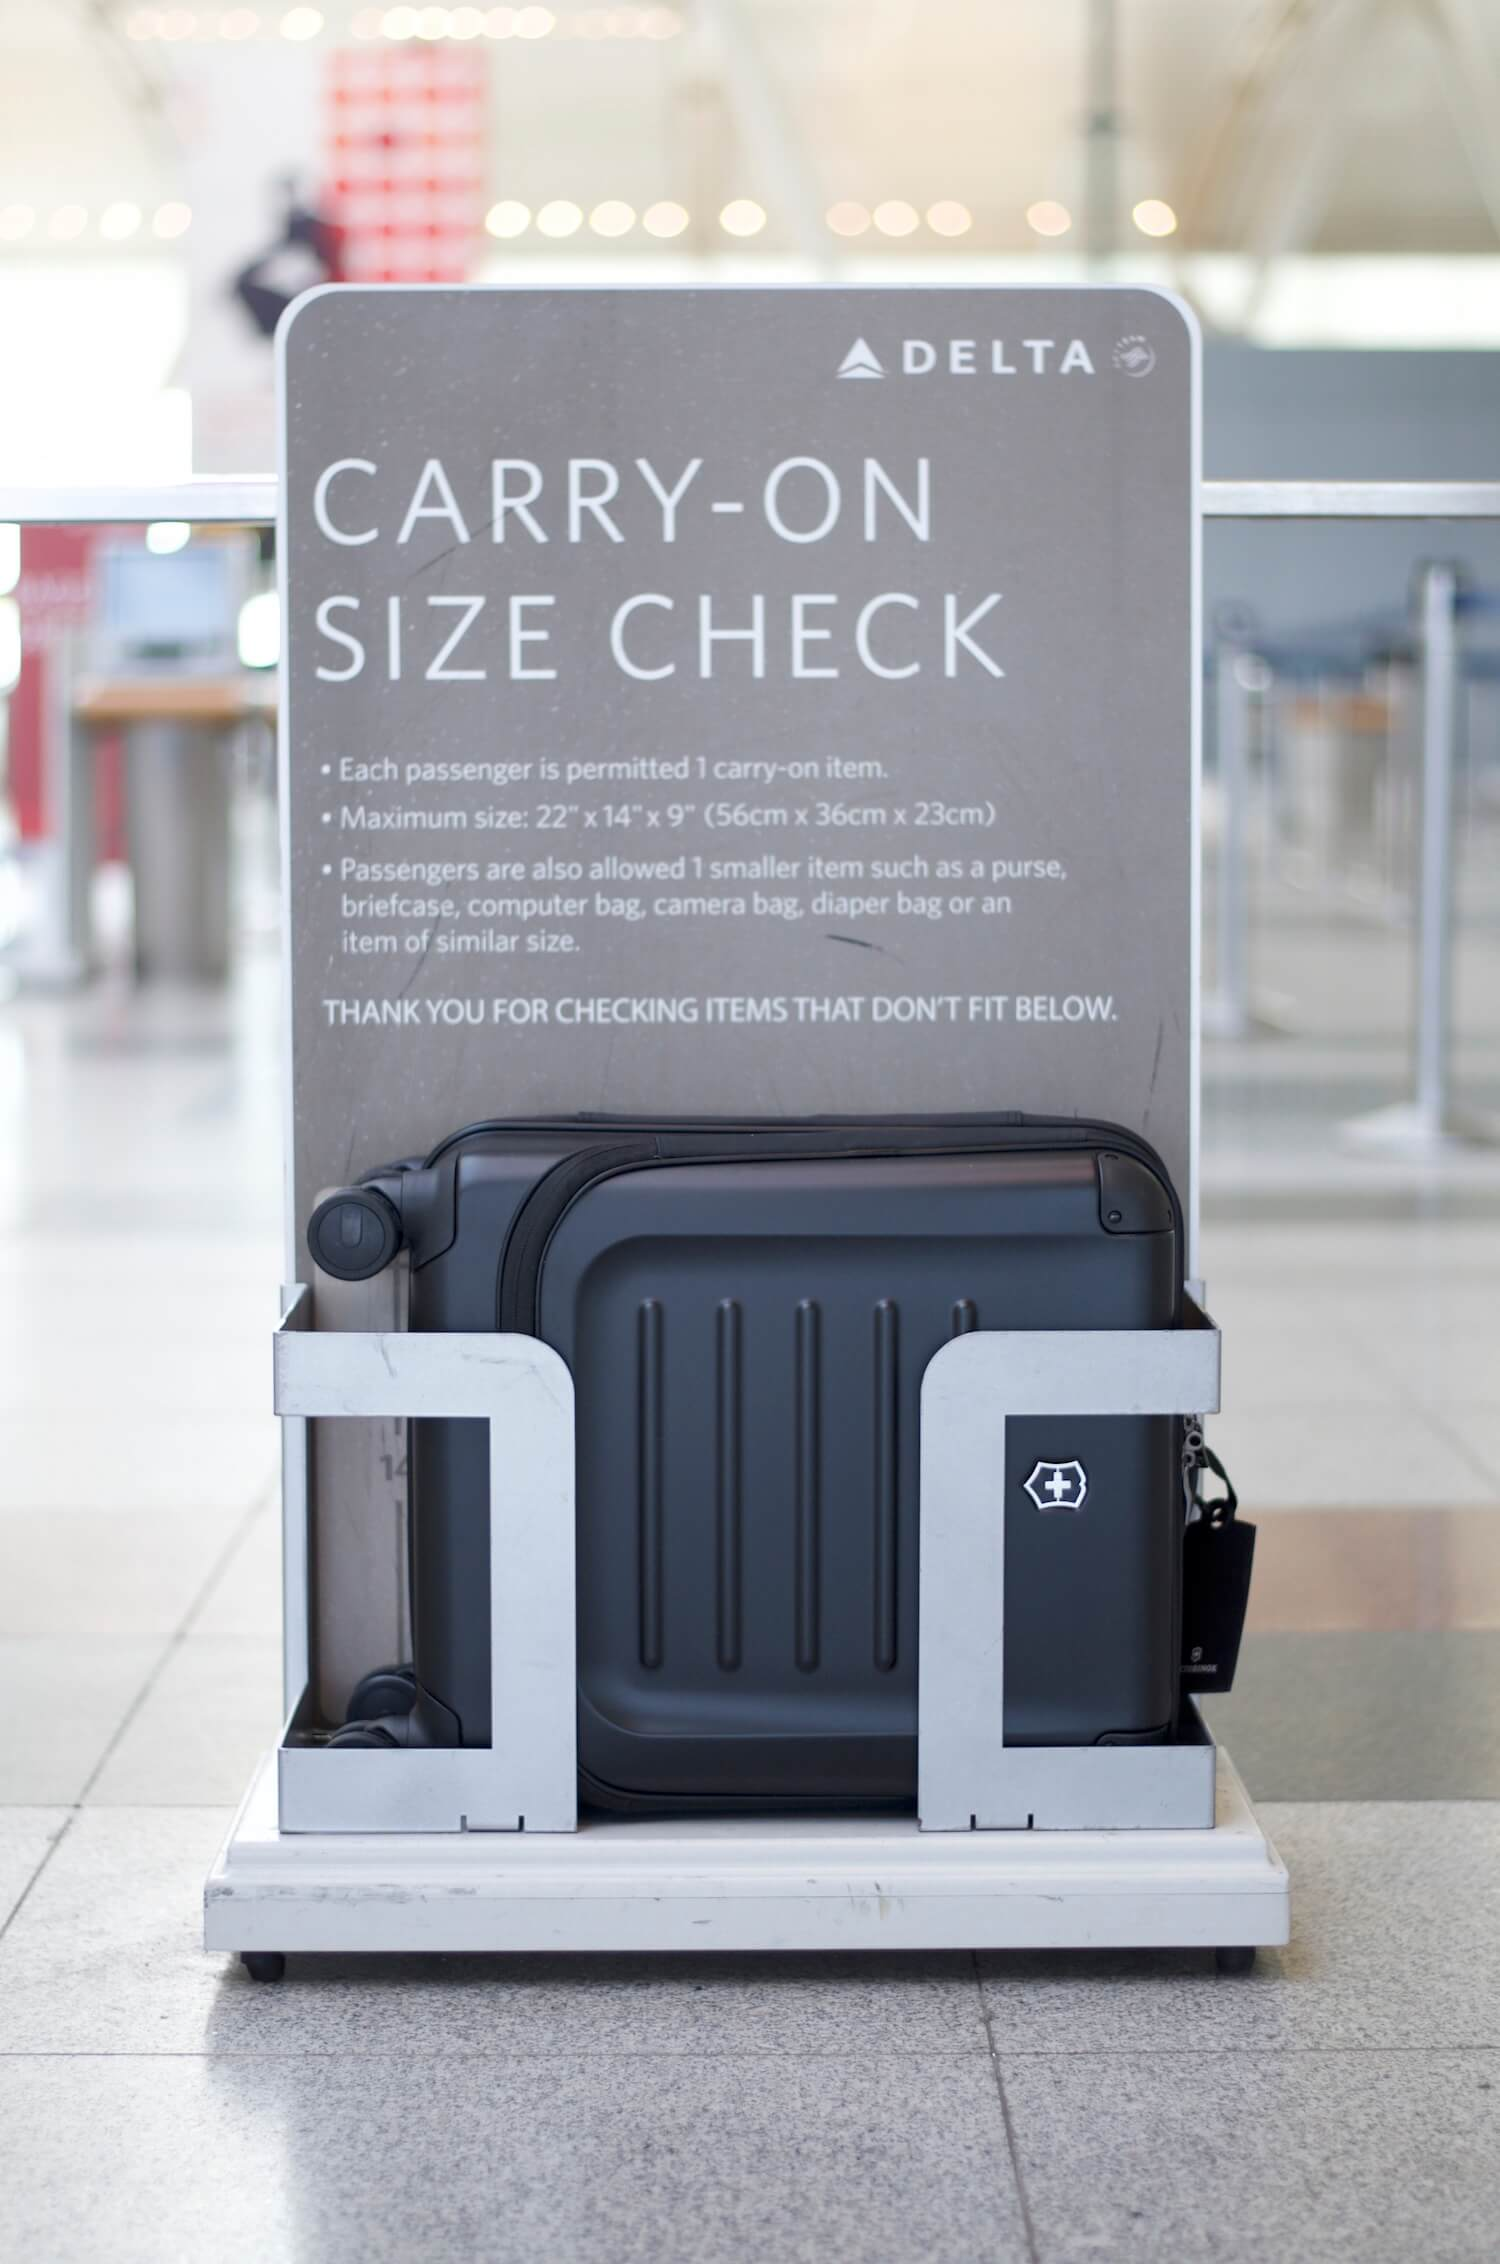 The Spectra luggage is within Delta's carry-on restrictions